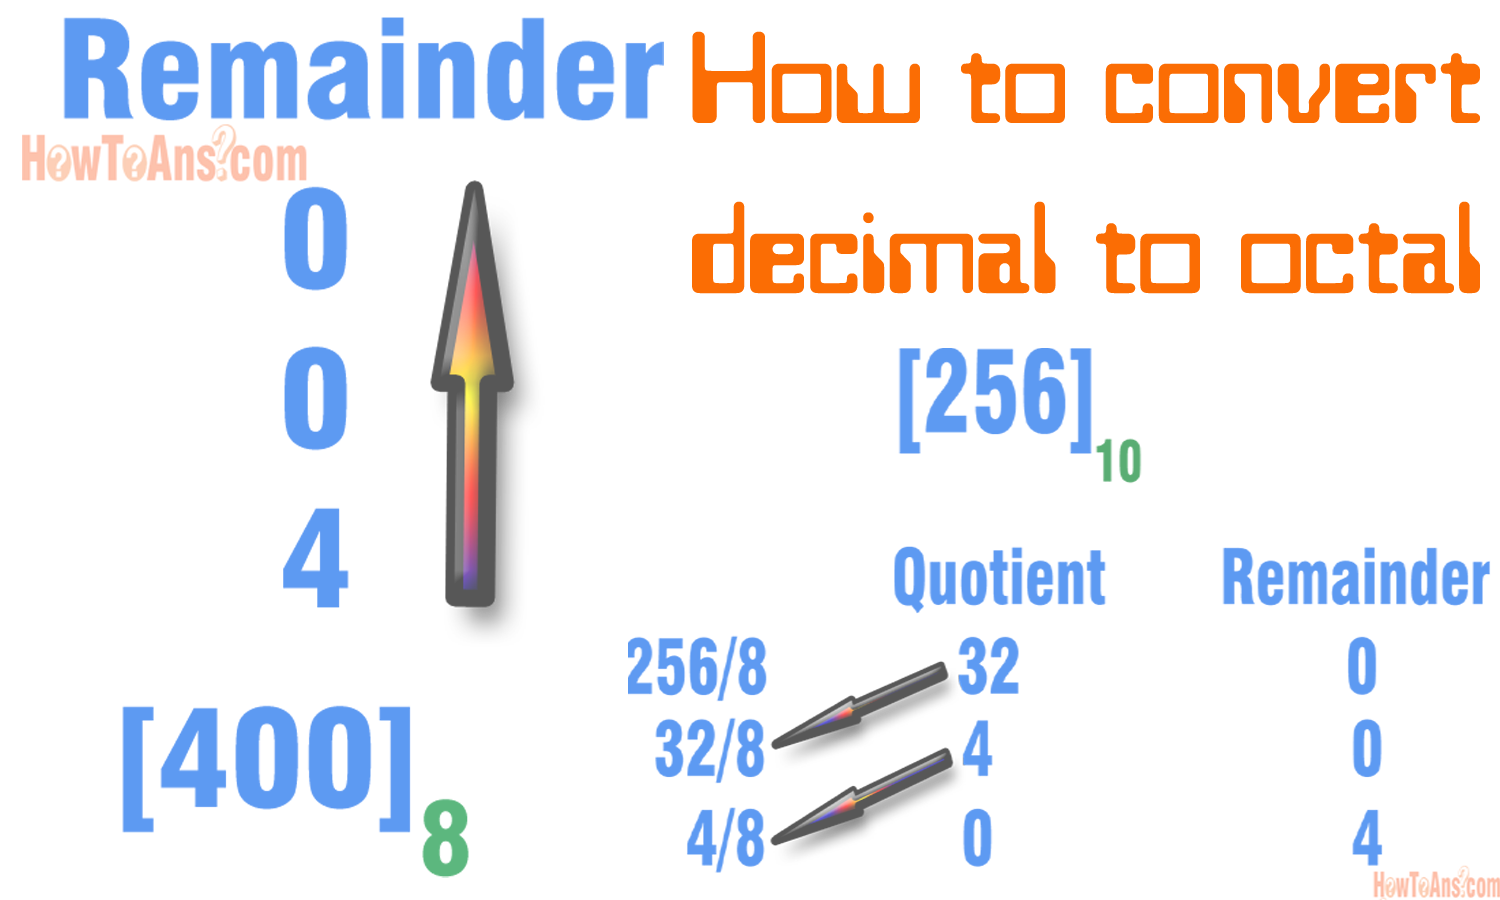 Binary number conversion tutorial